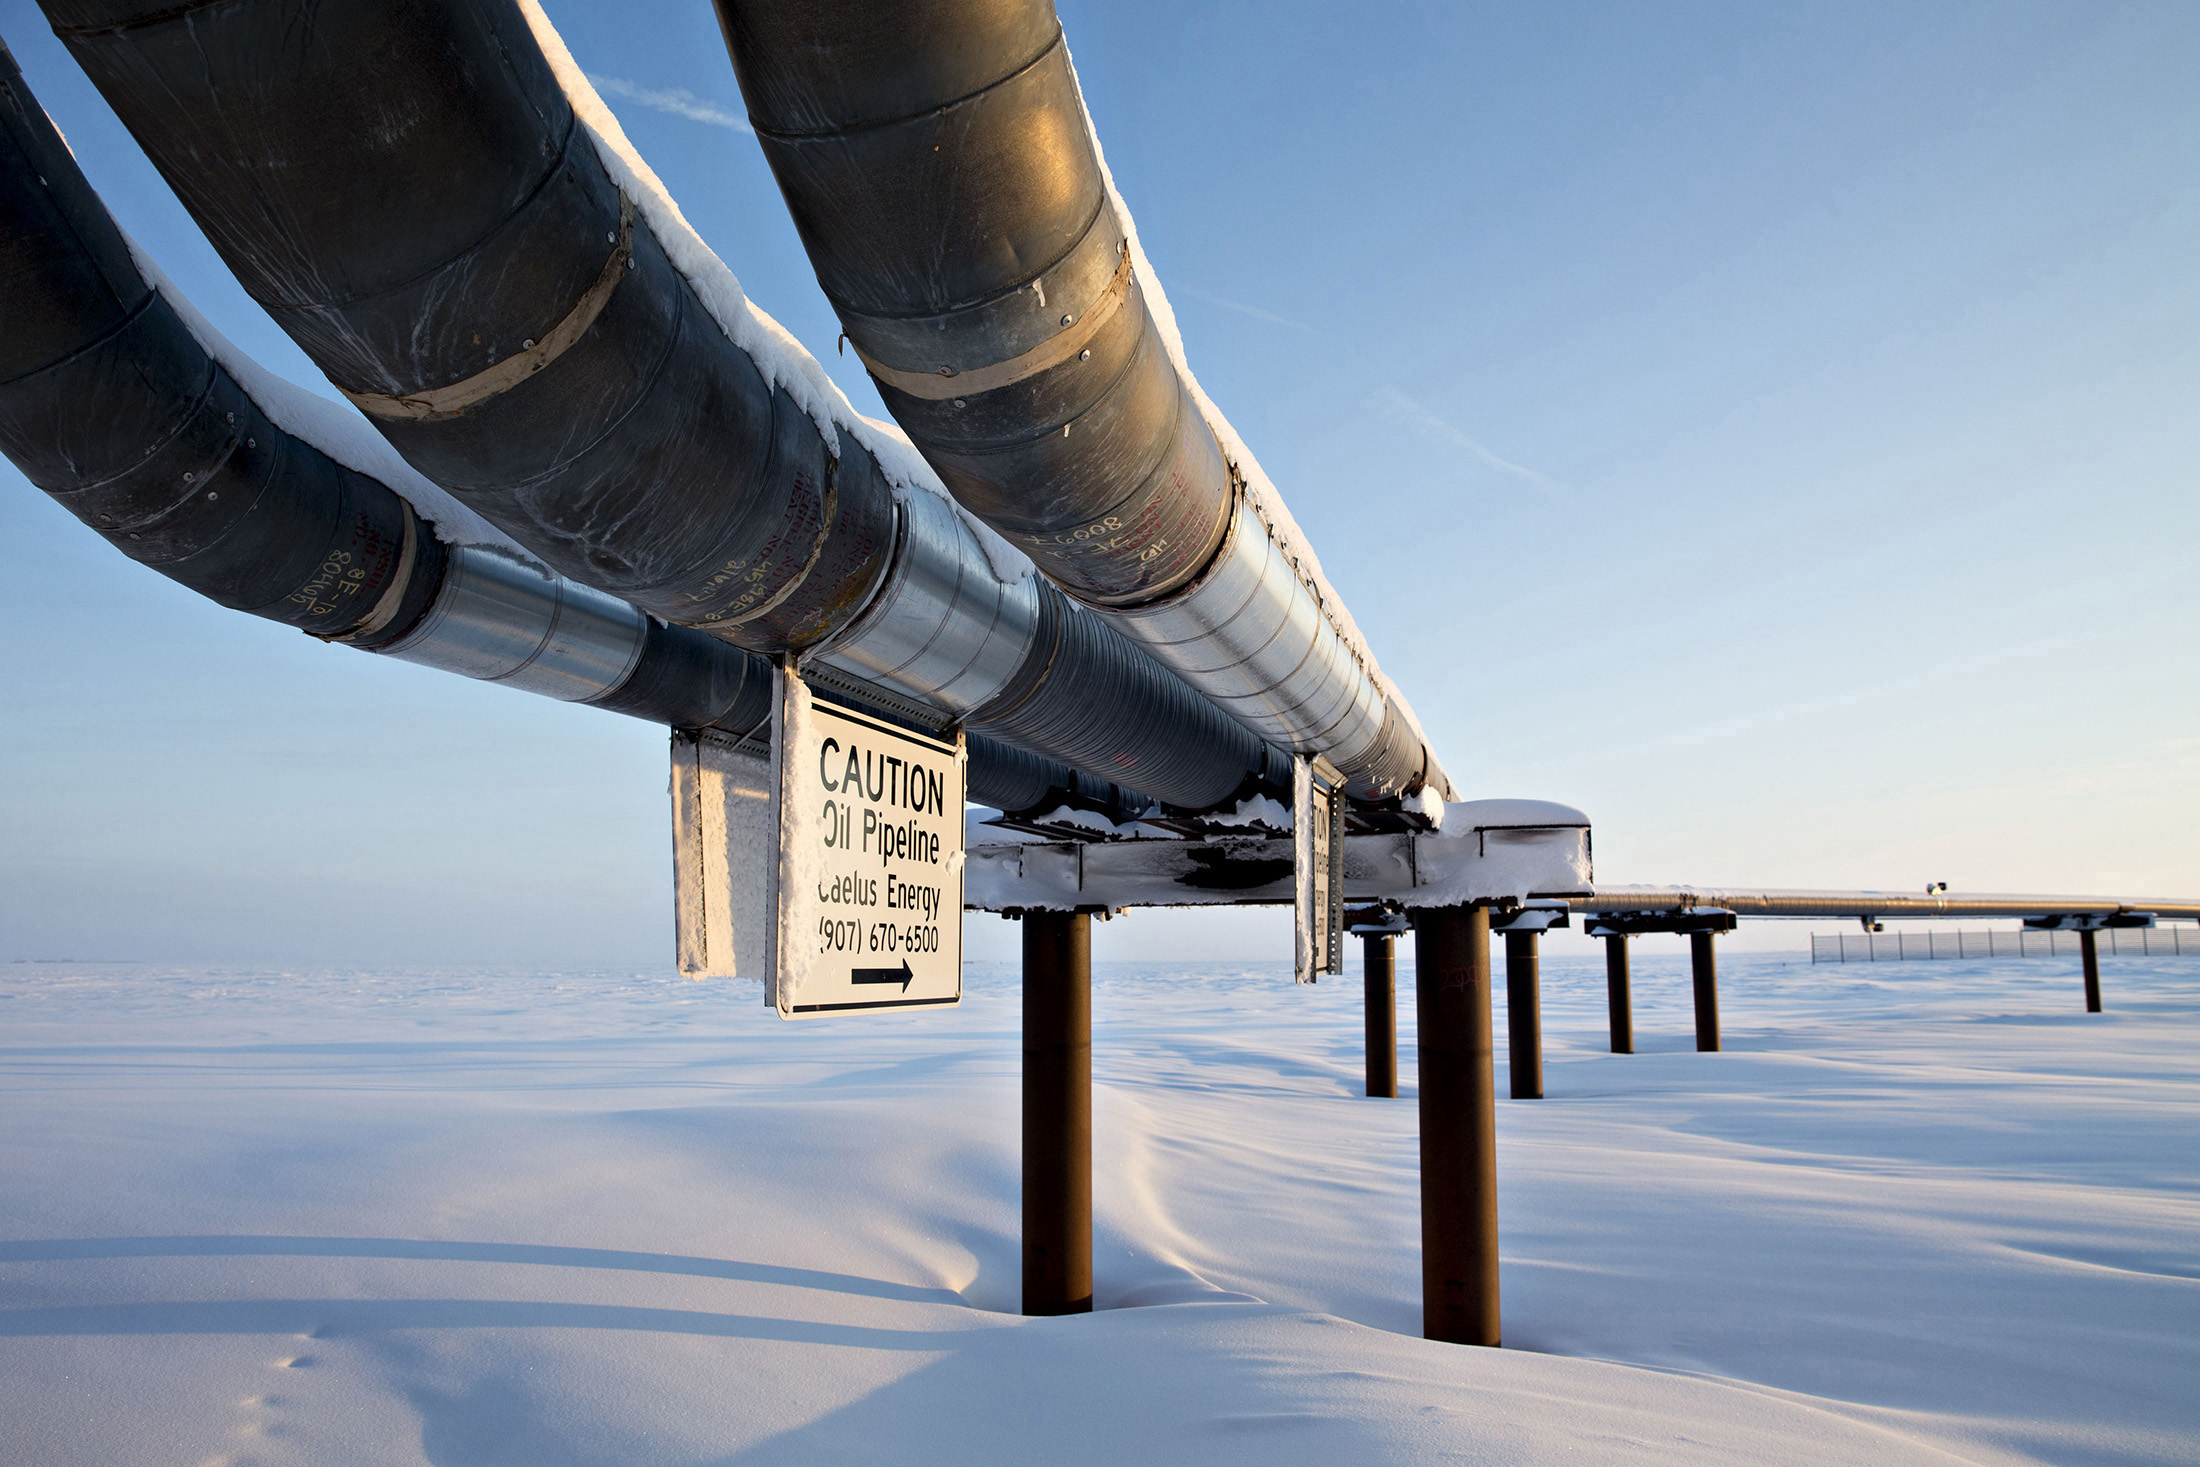 Alaska pipeline built to survive extremes can't bear slow oil flow